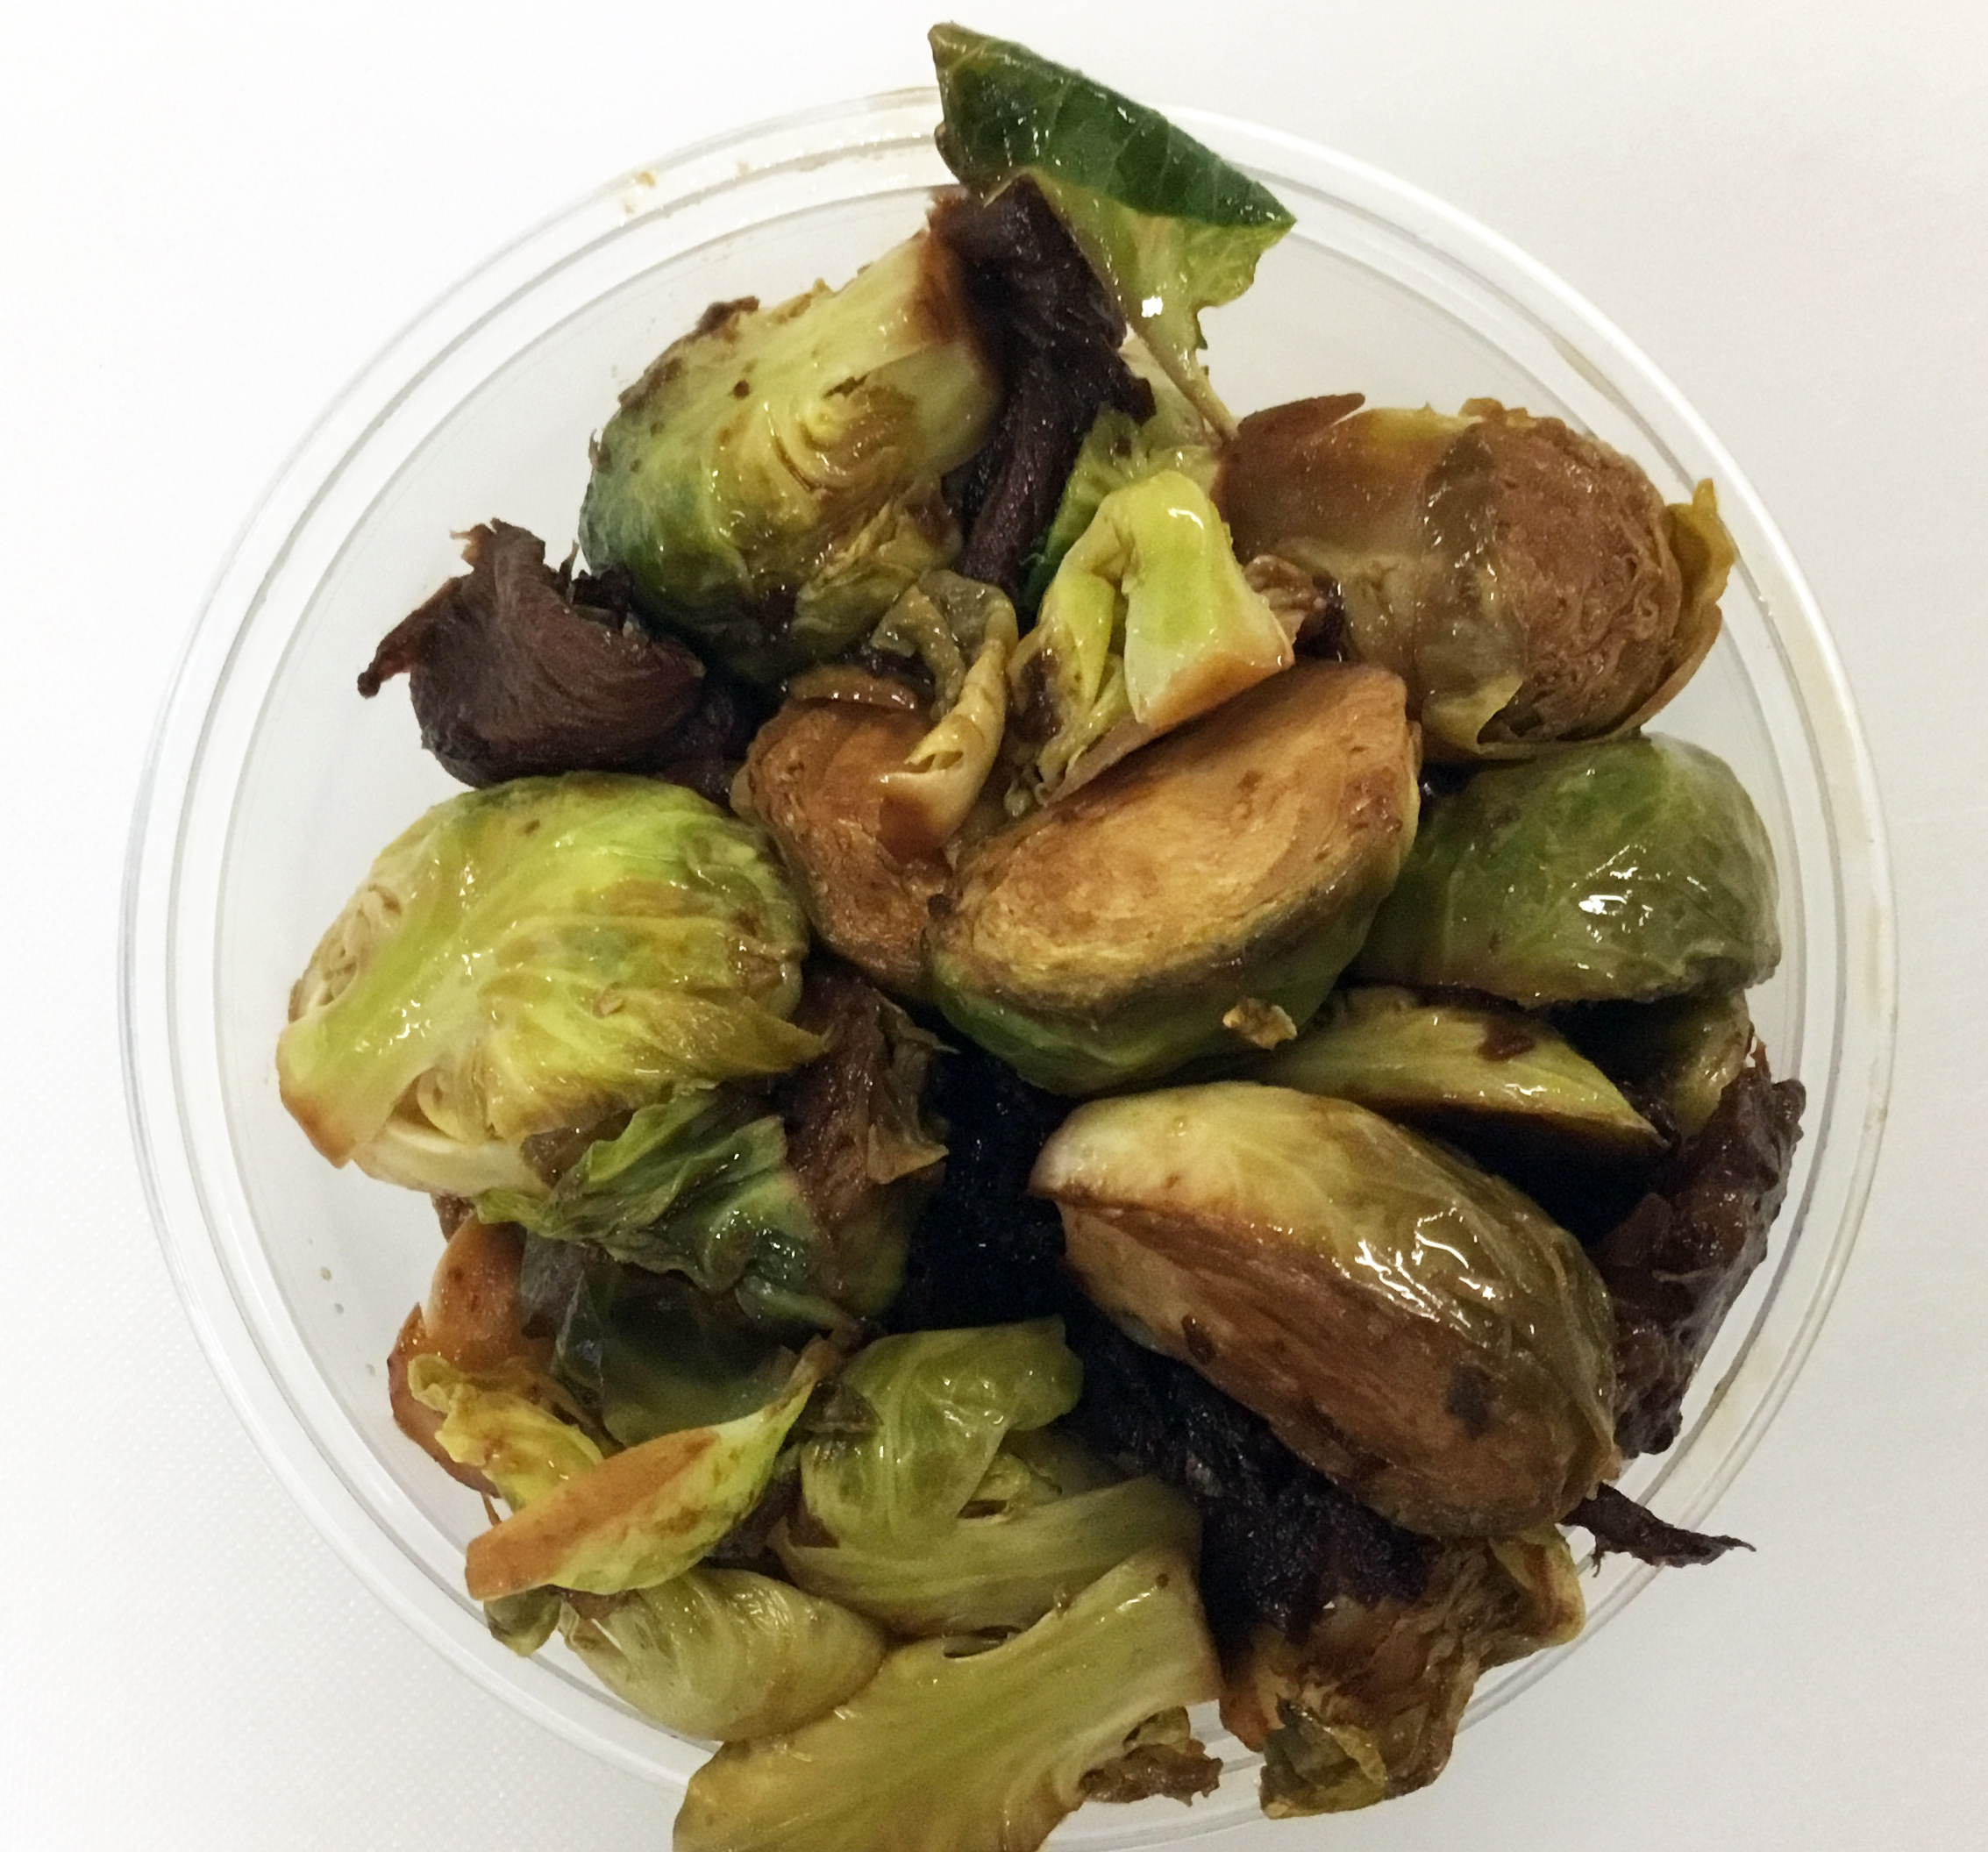 Braised brussel sprouts with Turkish apricots.